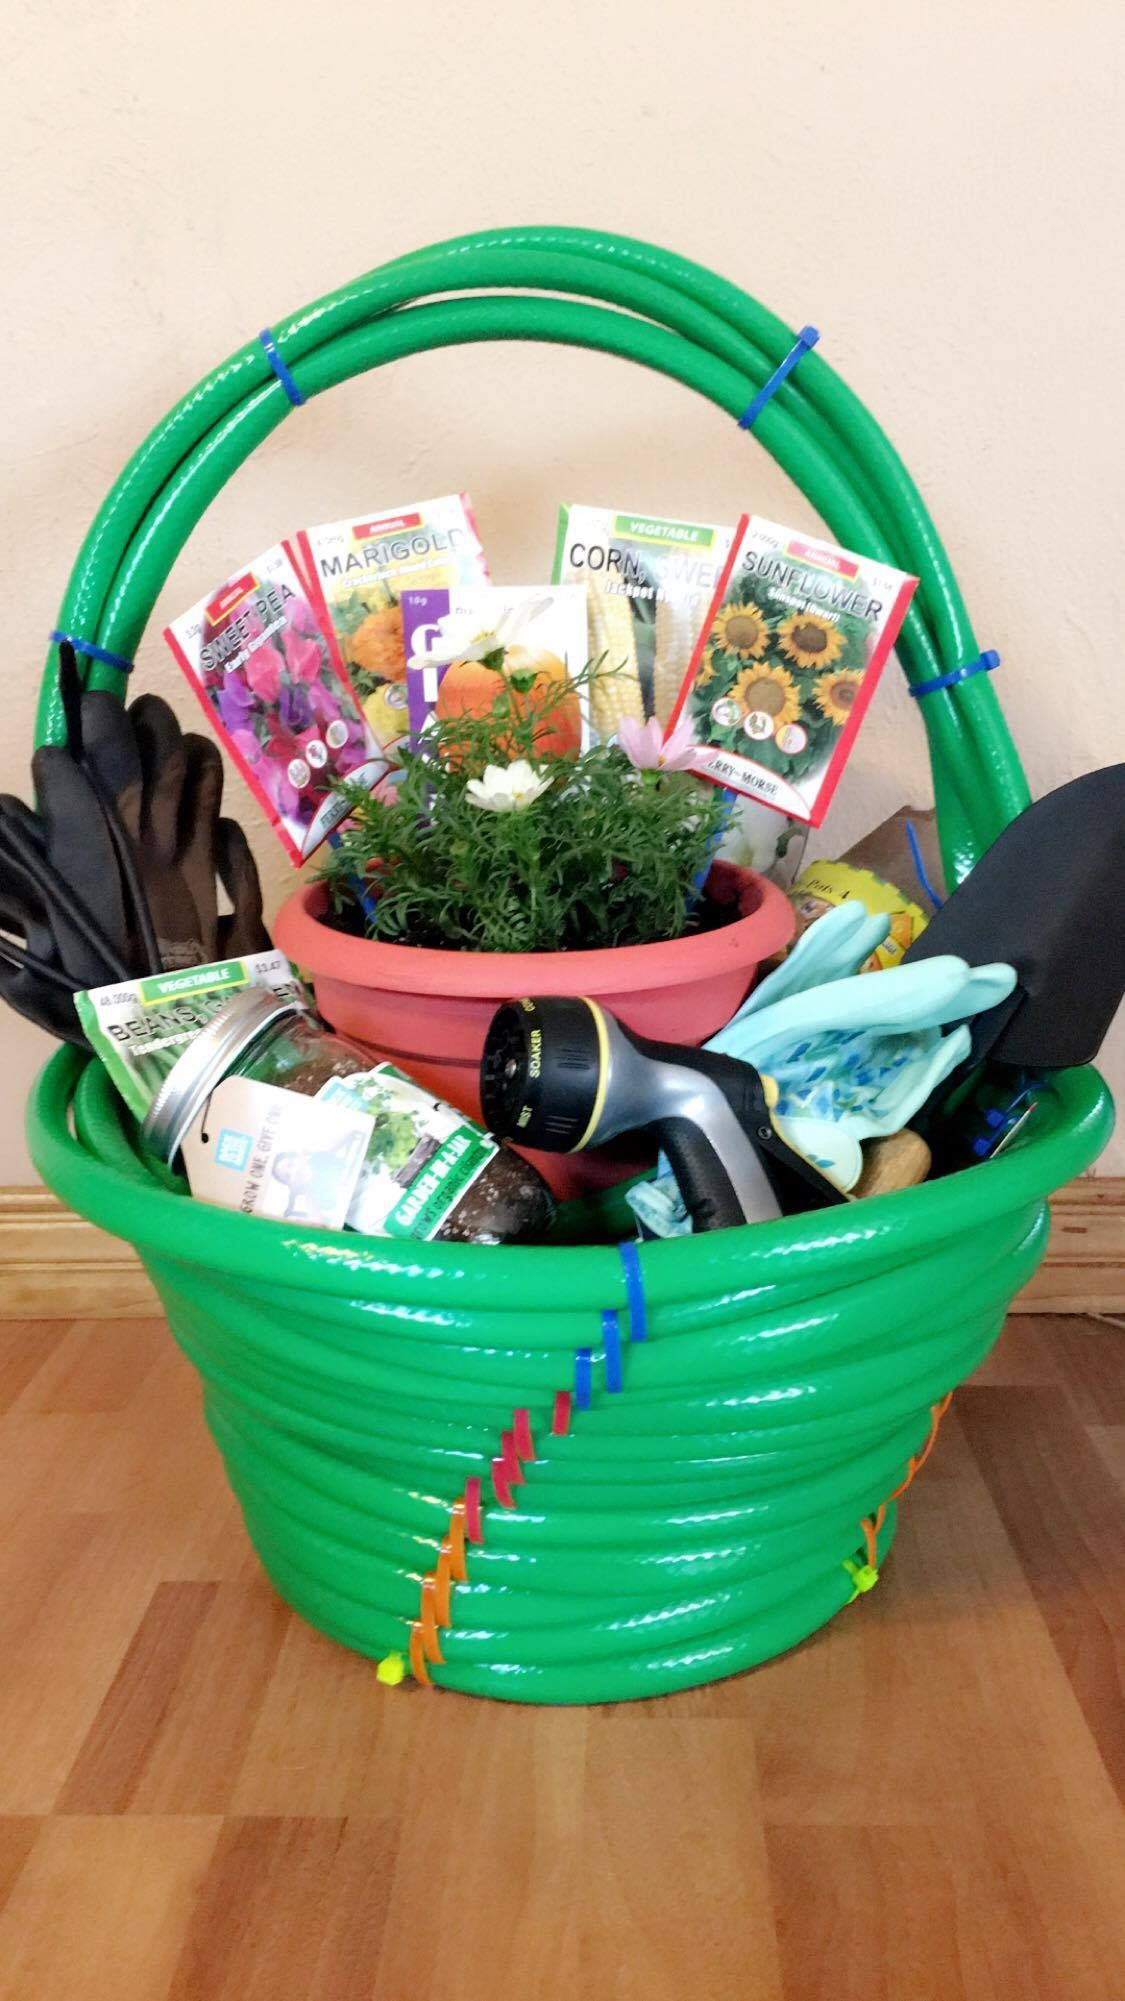 Best ideas about Silent Auction Gift Basket Ideas . Save or Pin Garden themed silent auction basket Now.